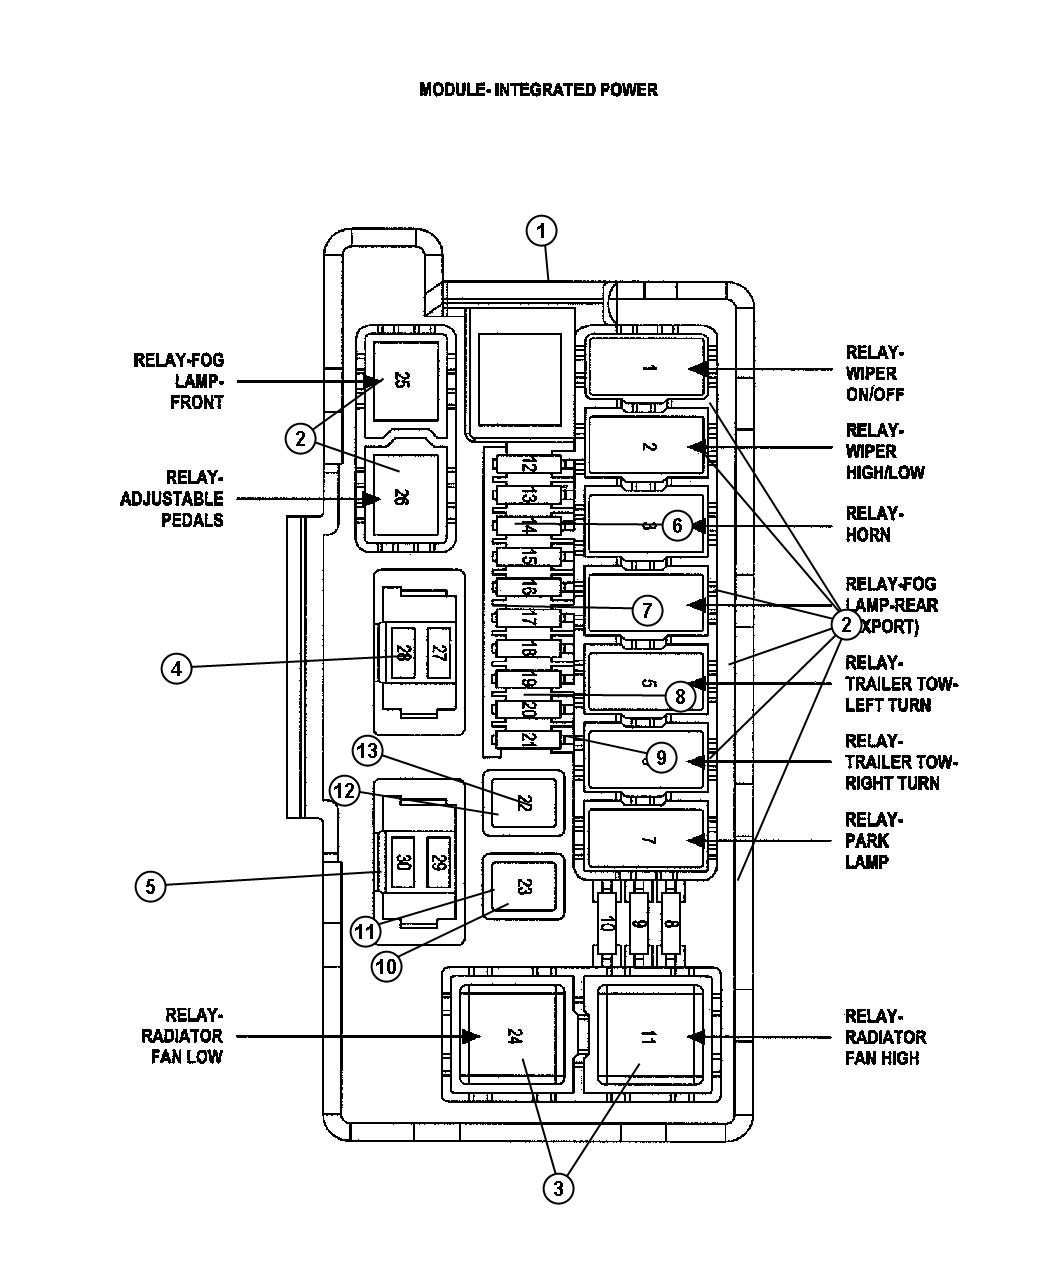 OUO1023 000289B 19 21SEP06 1 additionally Power Deck Trailer Wiring Diagram further The Towbar in addition 2002 Ford F 350 Diesel Power Distribution Fuse Box Diagram besides Watch. on trailer junction box wiring diagram